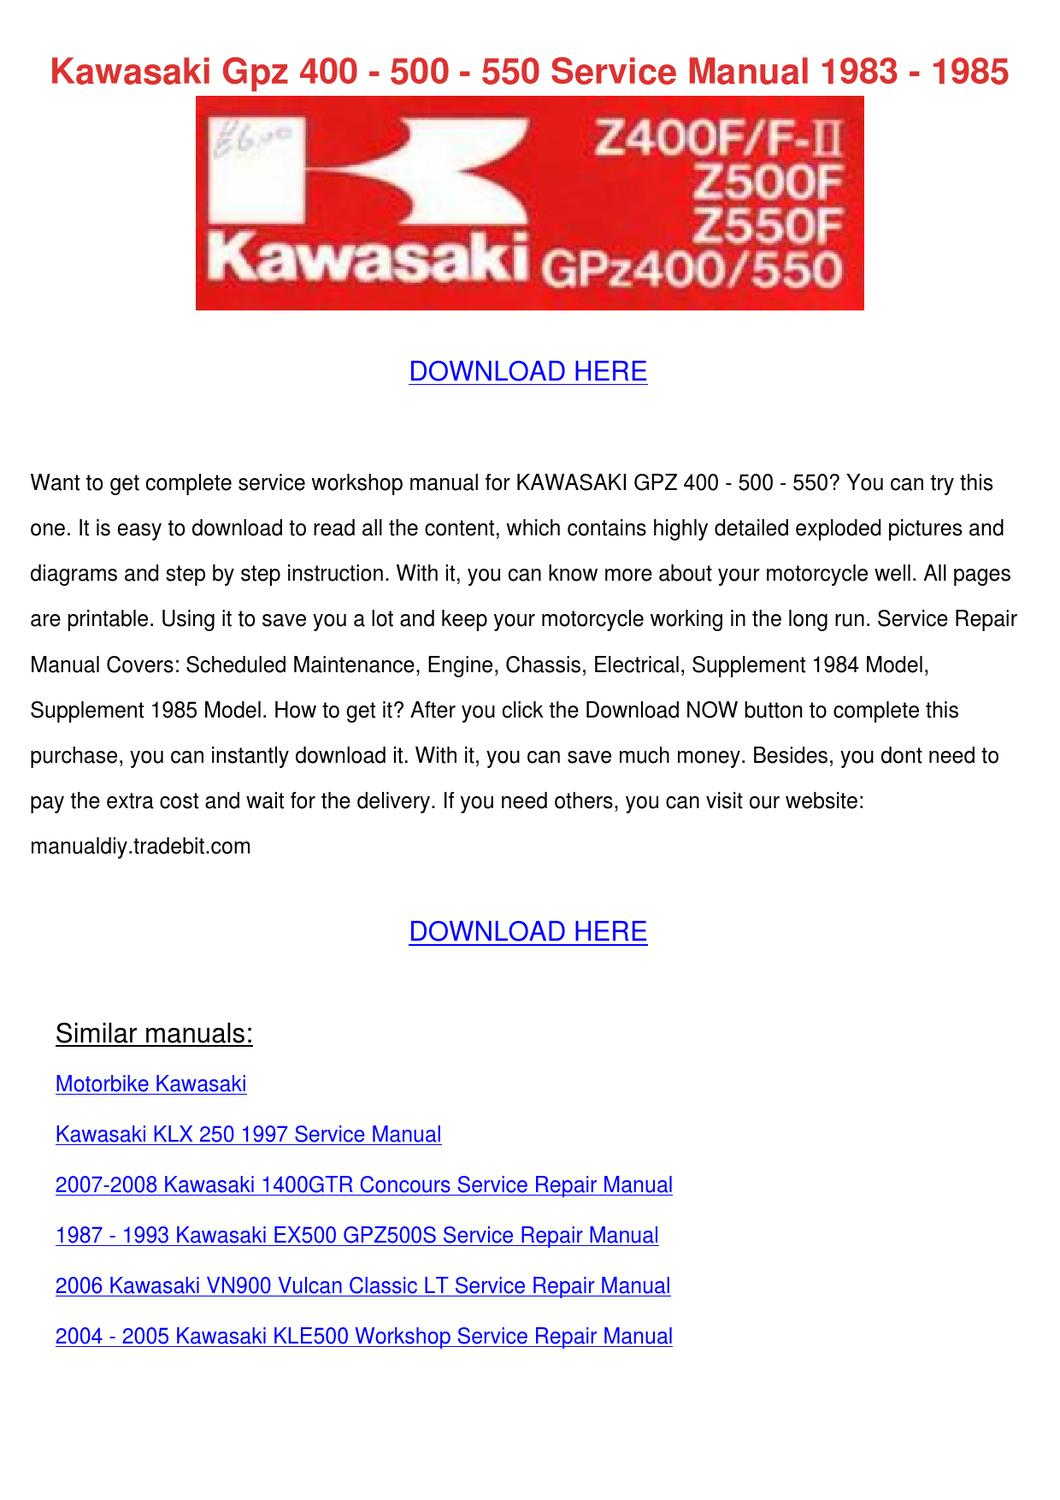 kawasaki gpz 400 500 550 service manual 1983 by